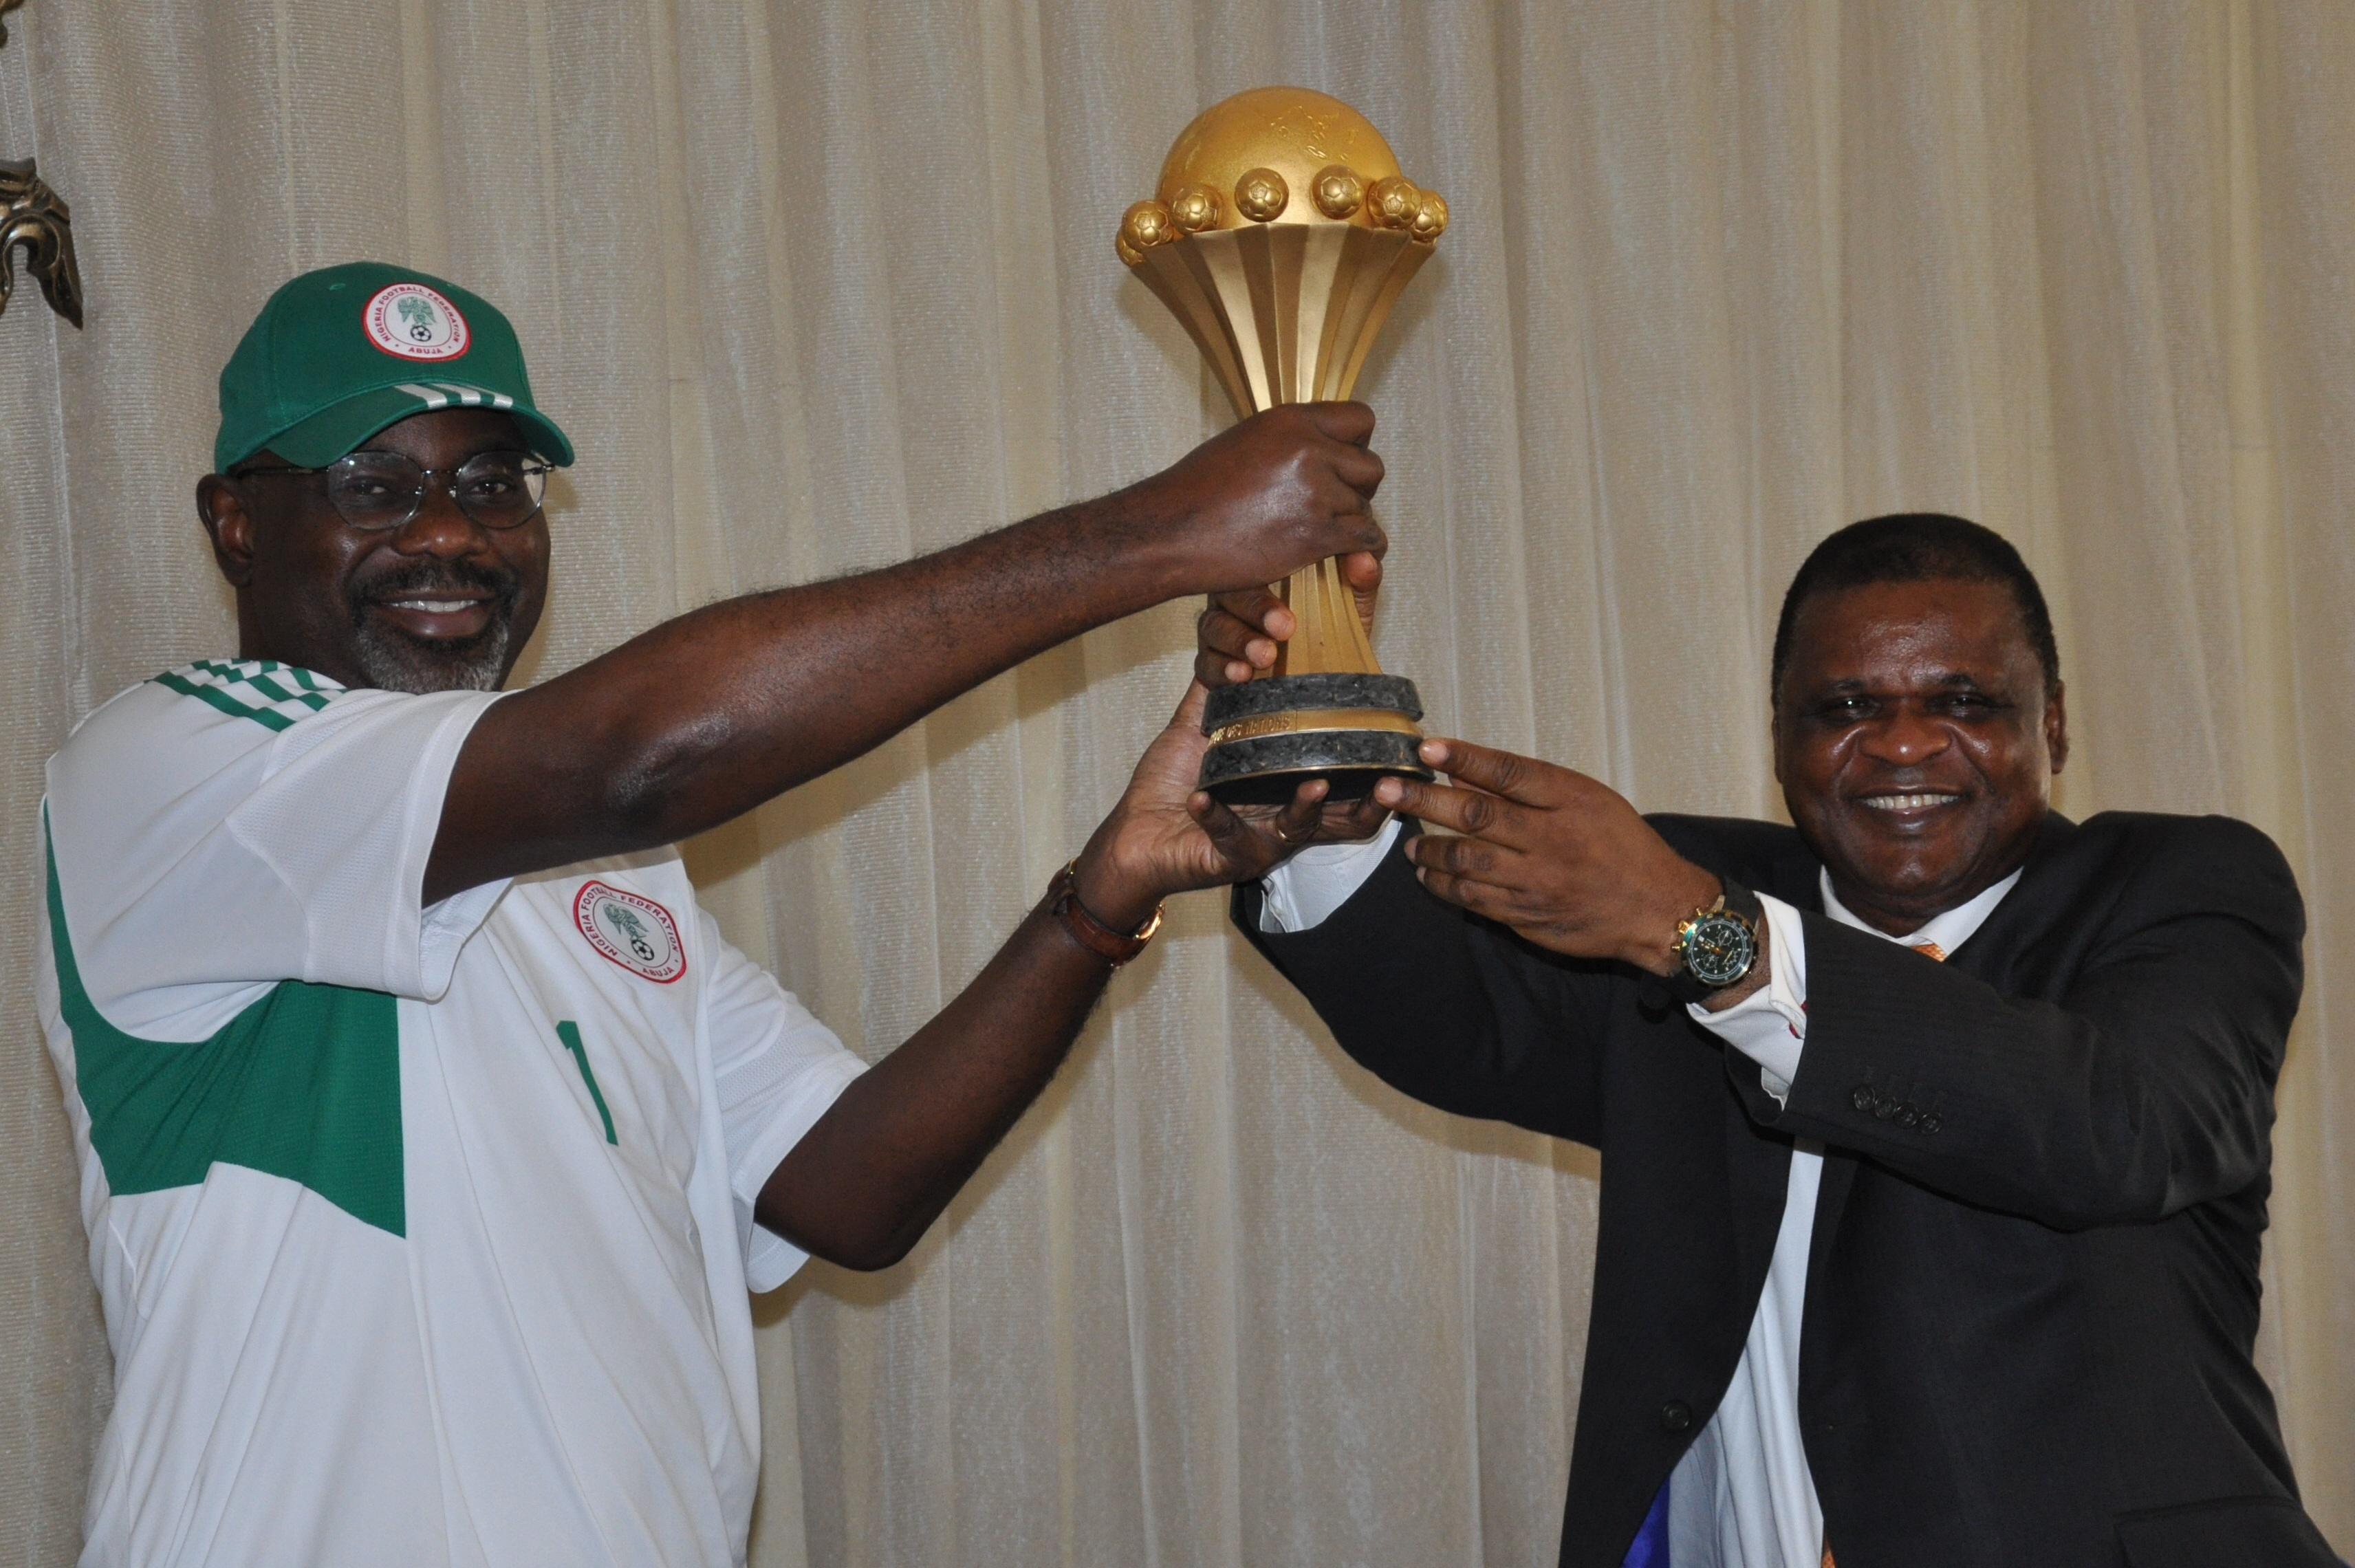 Afcon 2013: Imoke Rewards Super Eagles With Plots of Land And N25m